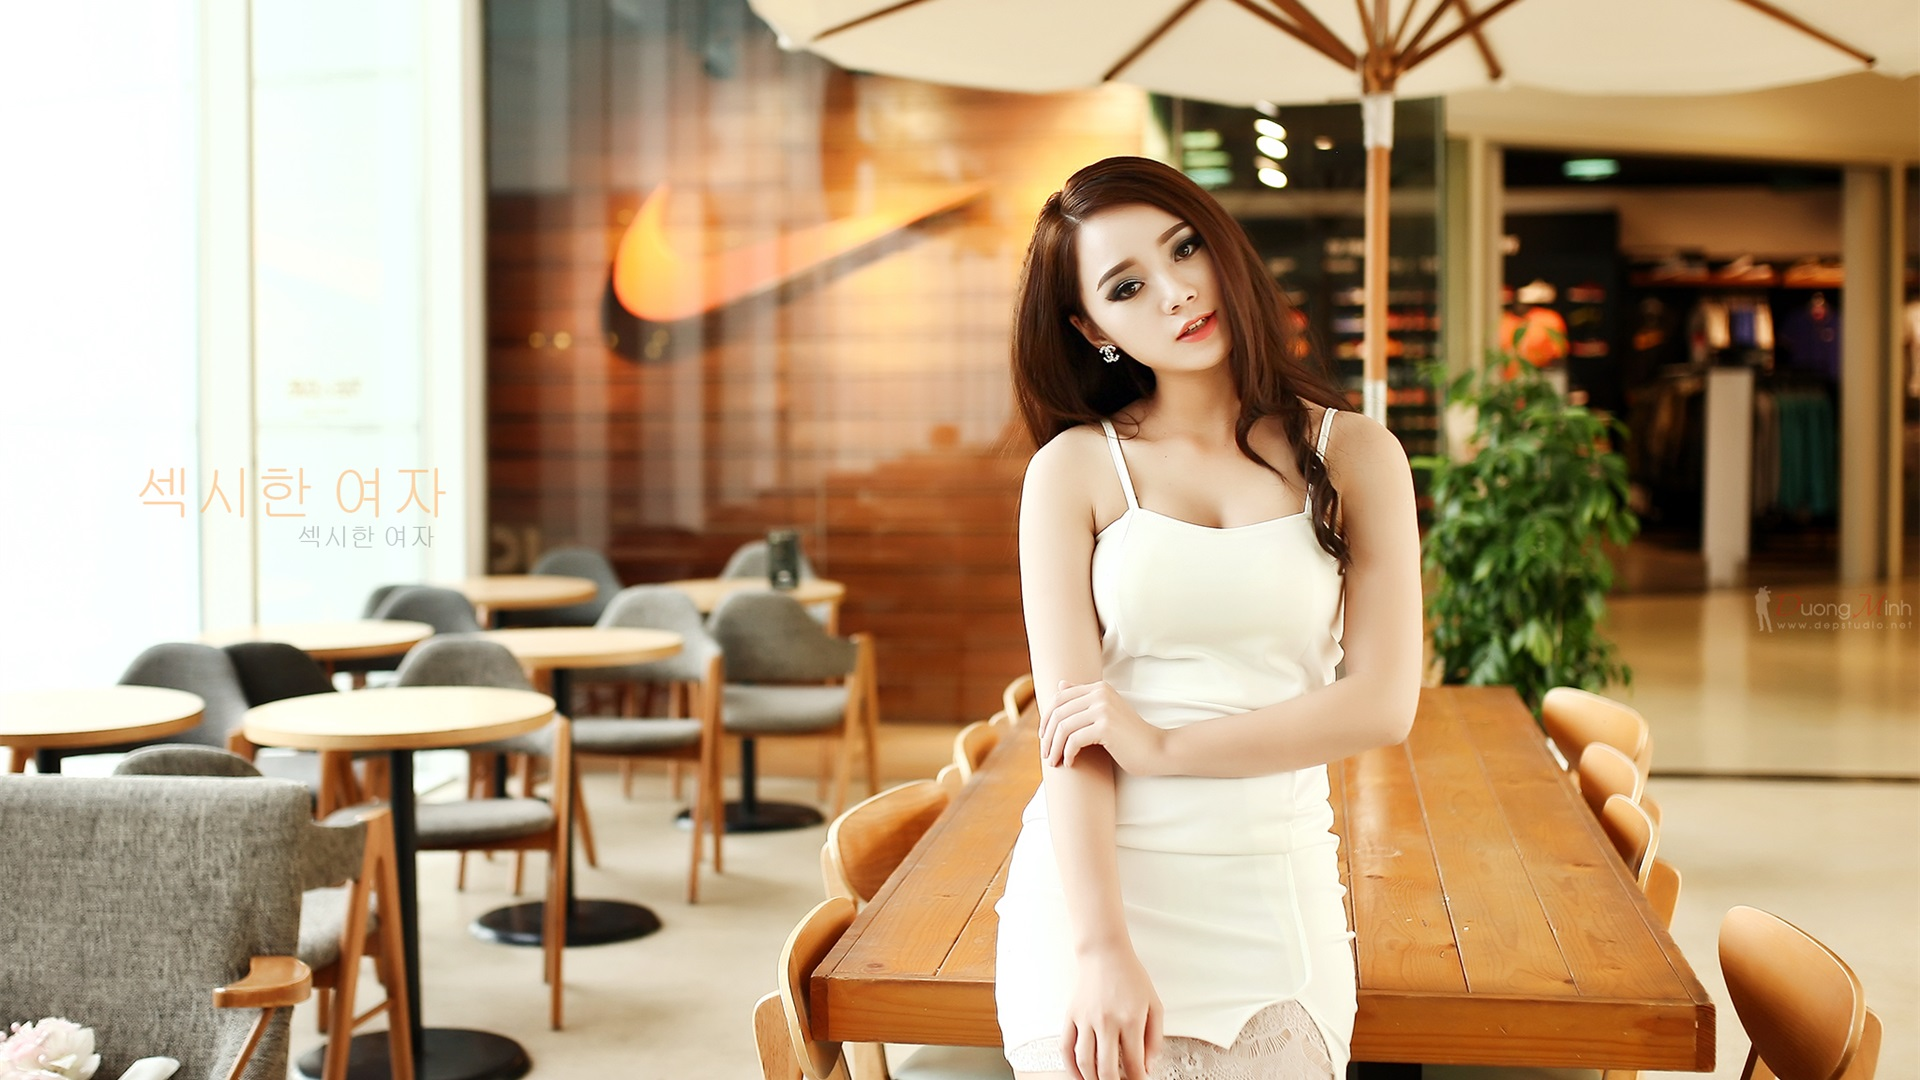 Wallpaper Korea girl, cafe 1920x1200 HD Picture, Image